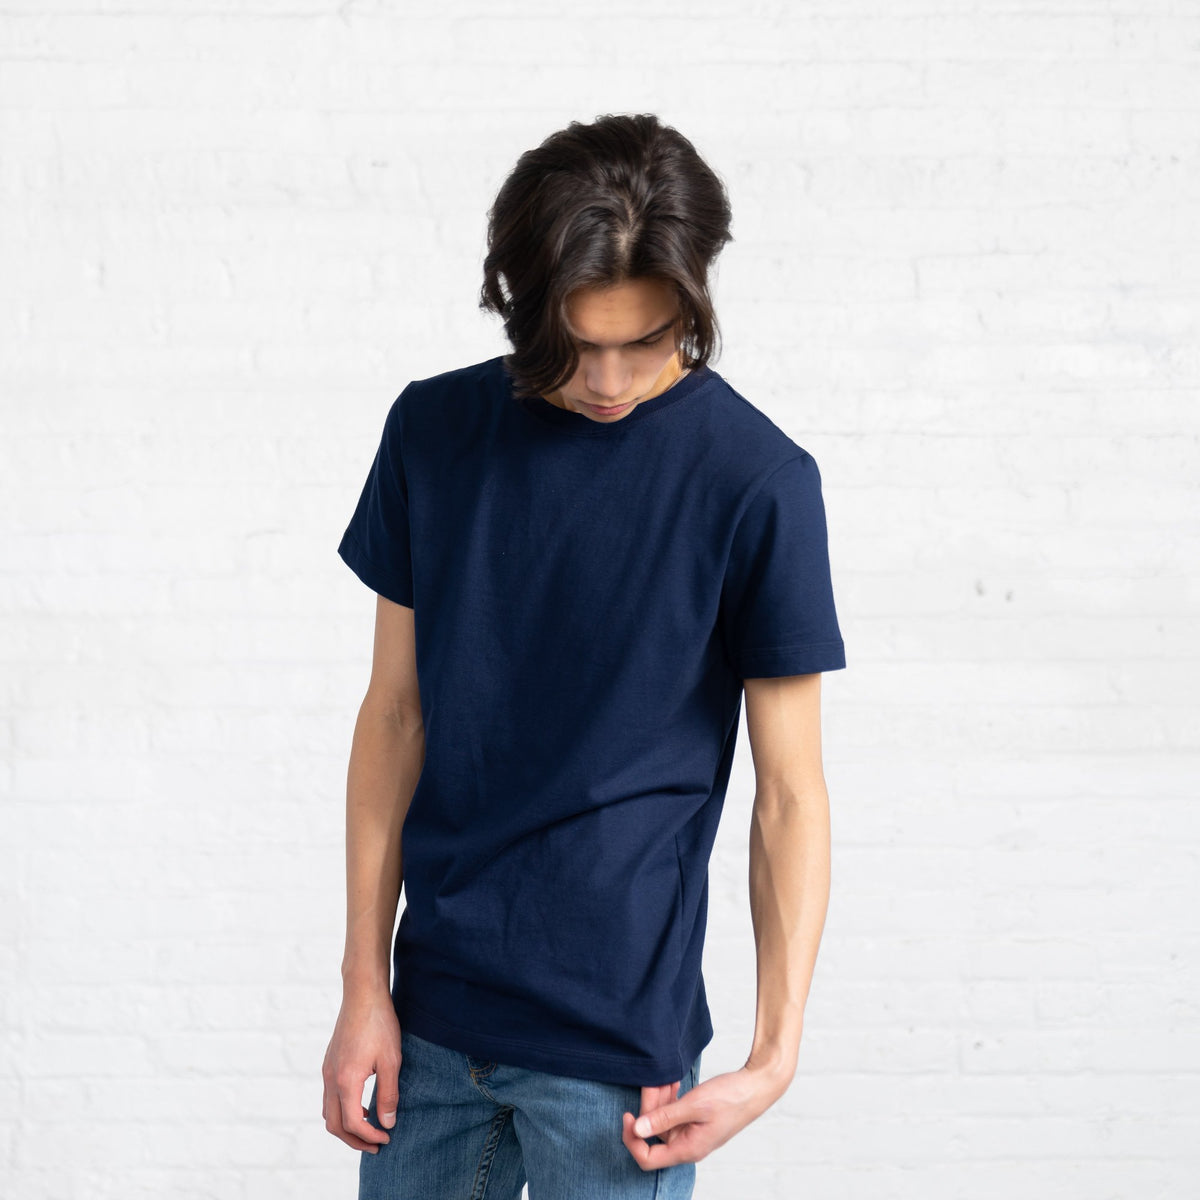 Fitted Color:Navy Combed Cotton Men's T-shirts